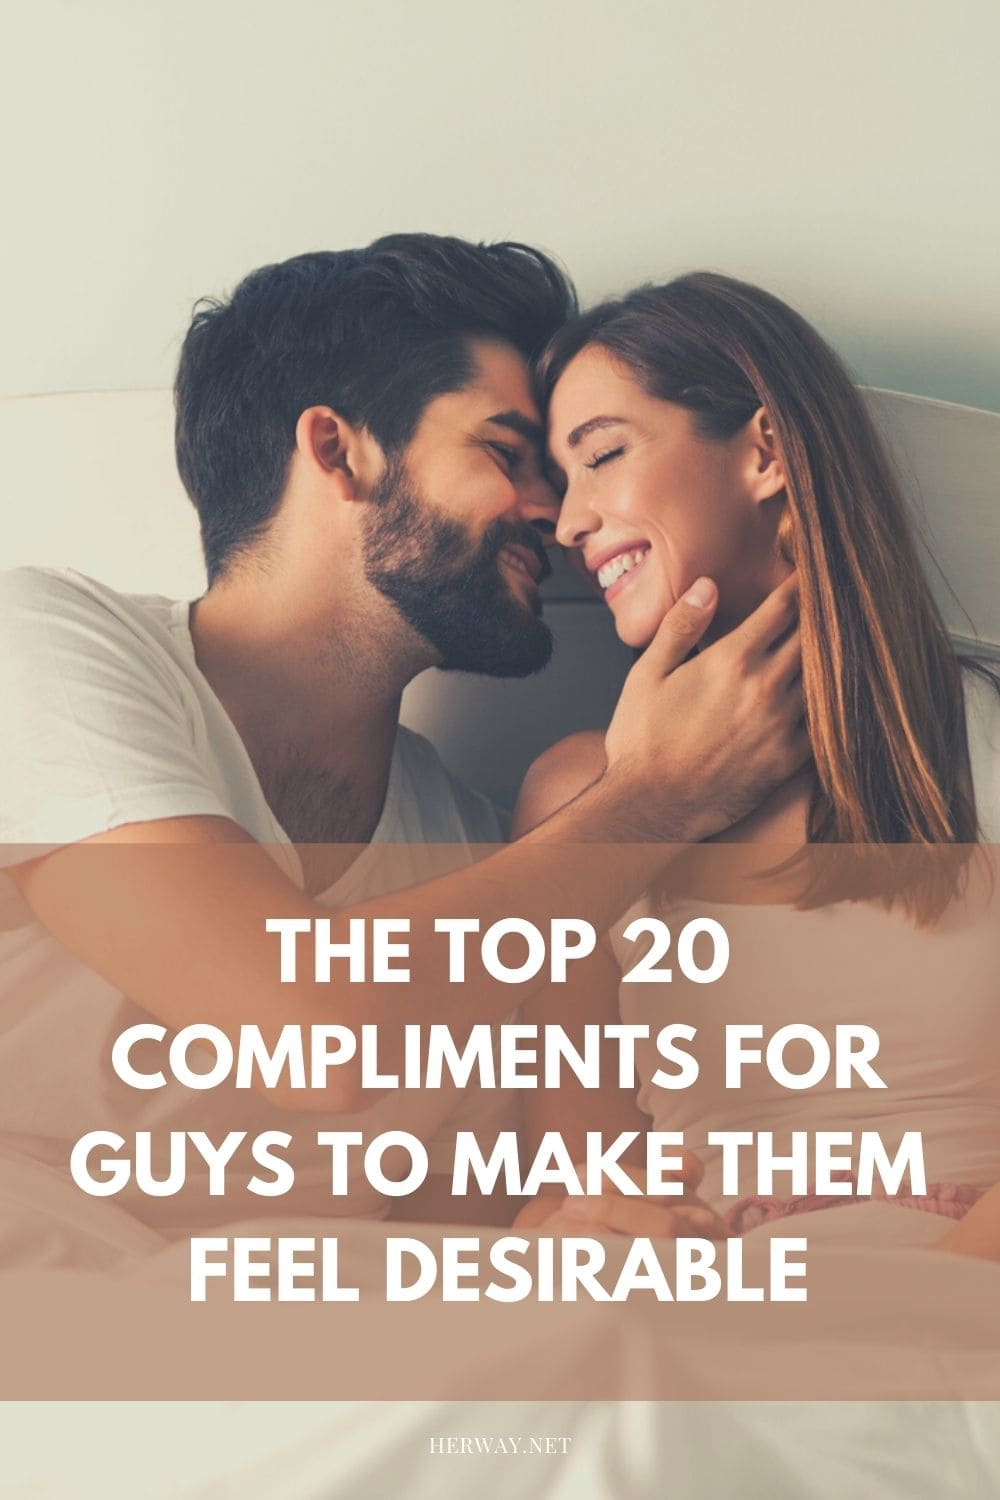 The Top 20 Compliments For Guys To Make Them Feel Desirable